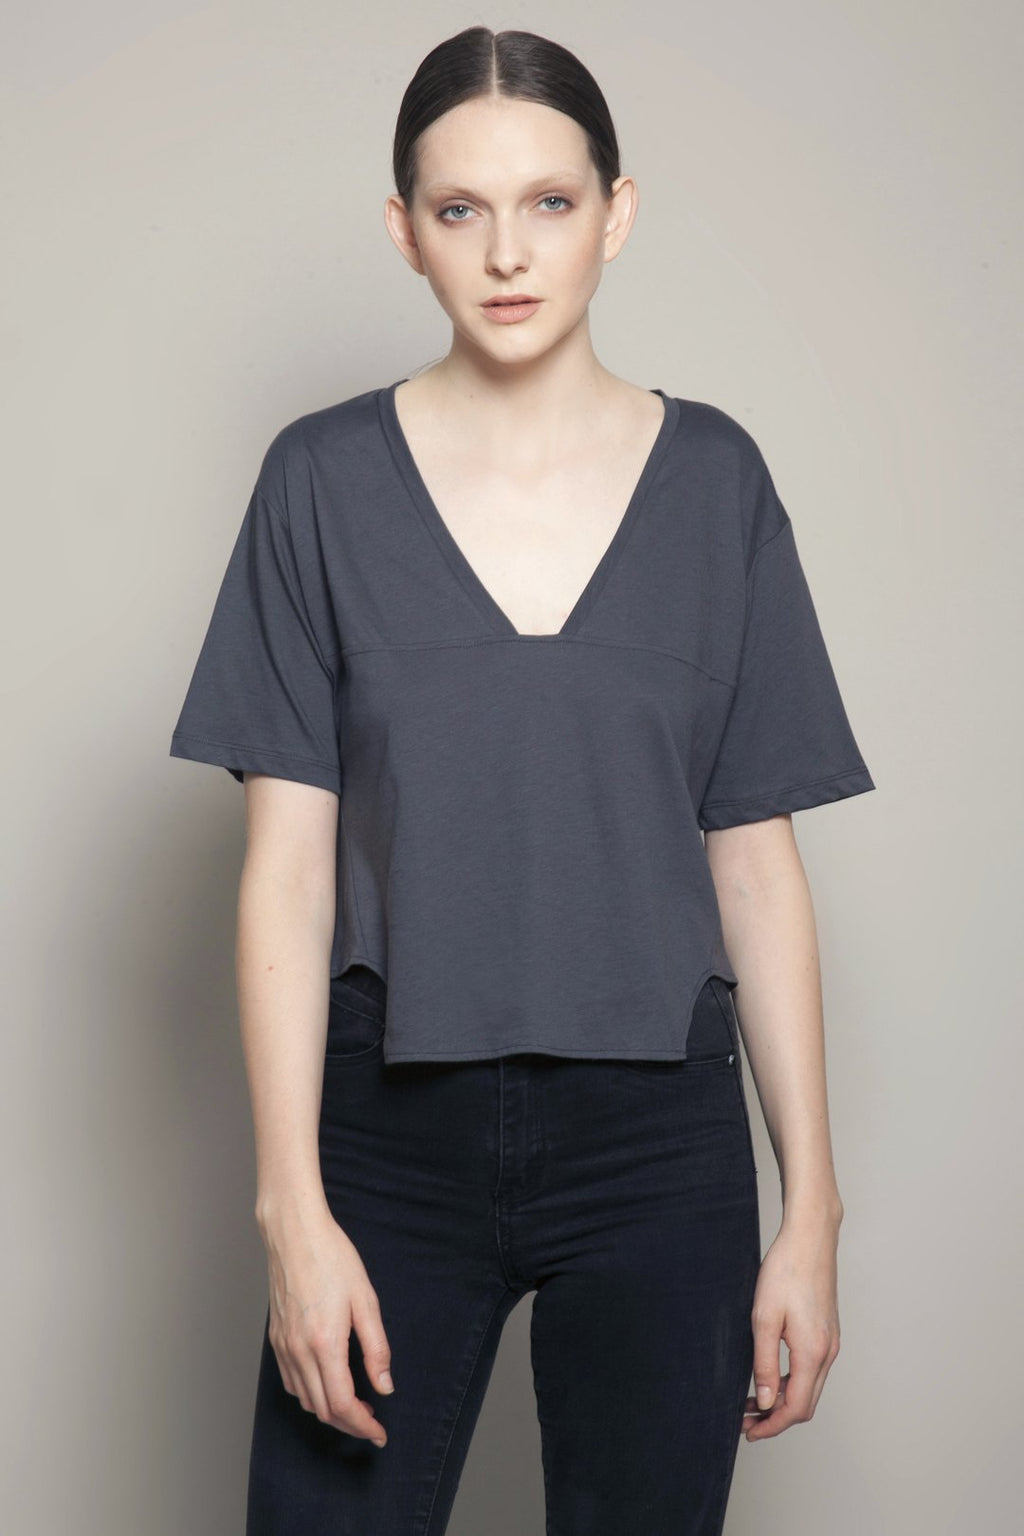 EIGHT Deep V Short Front Tee in Anthraciite | 4sisters1closet